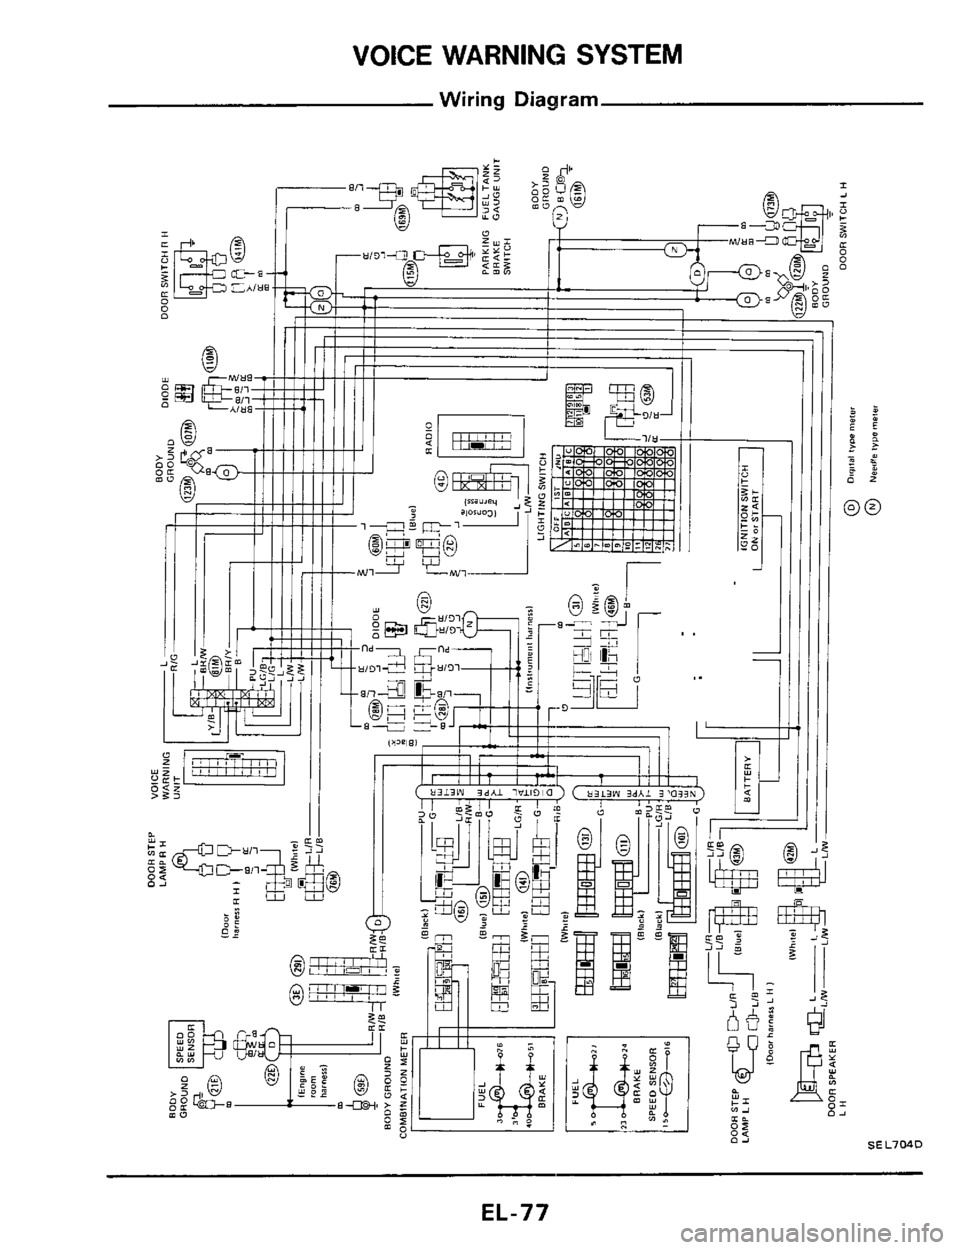 nissan 300zx 1984 z31 electrical system workshop manual, page 77